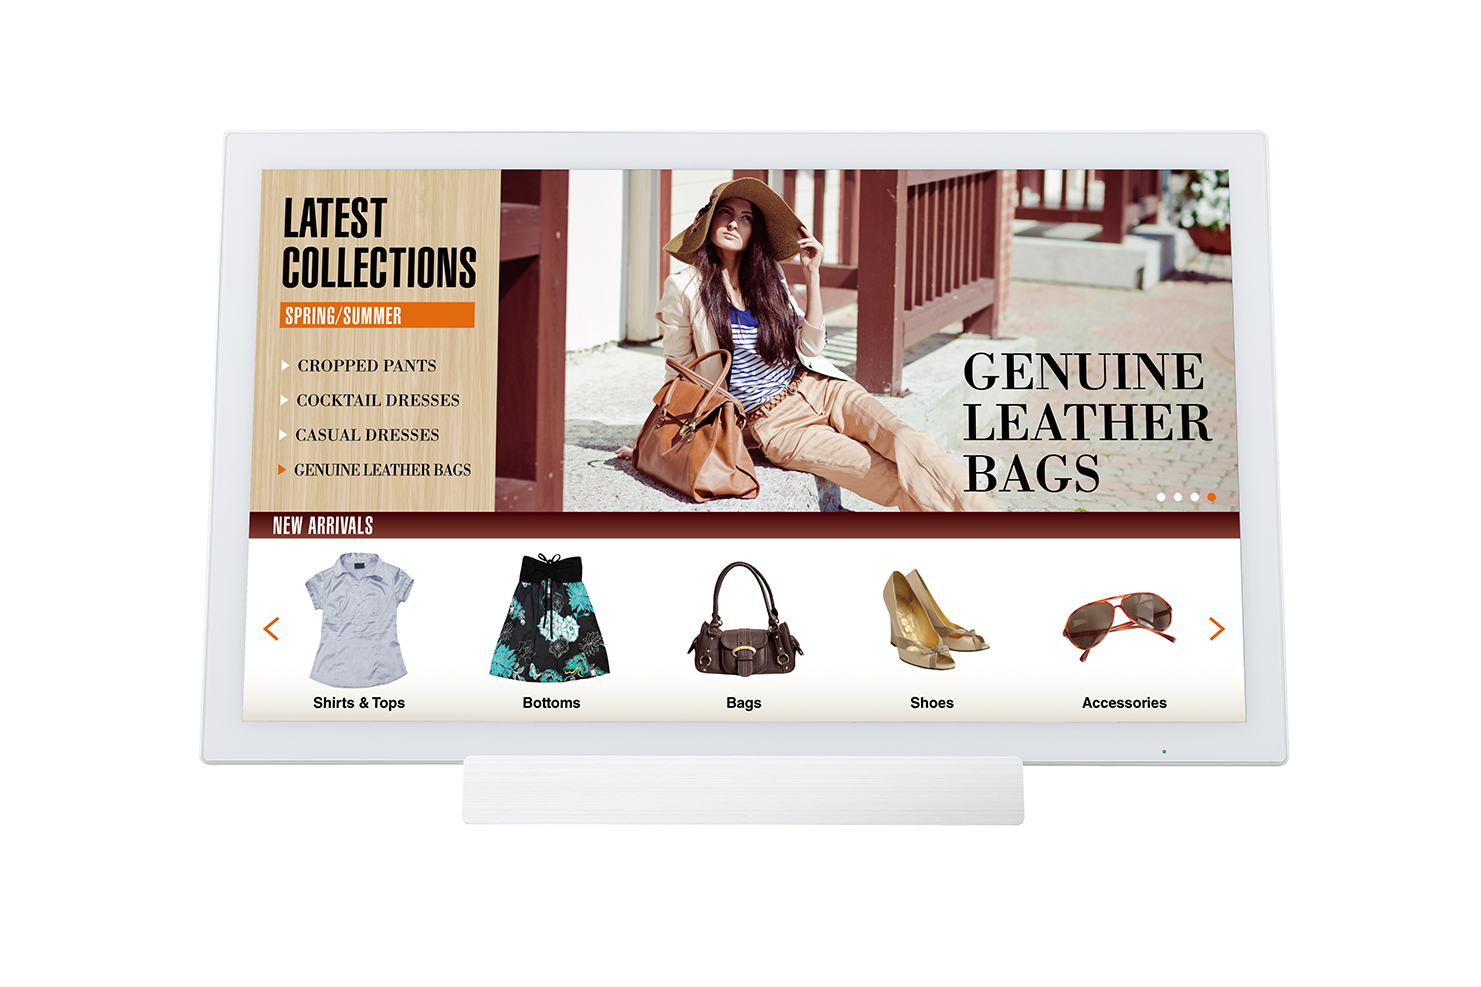 LL-S242A-W_in-store_signage